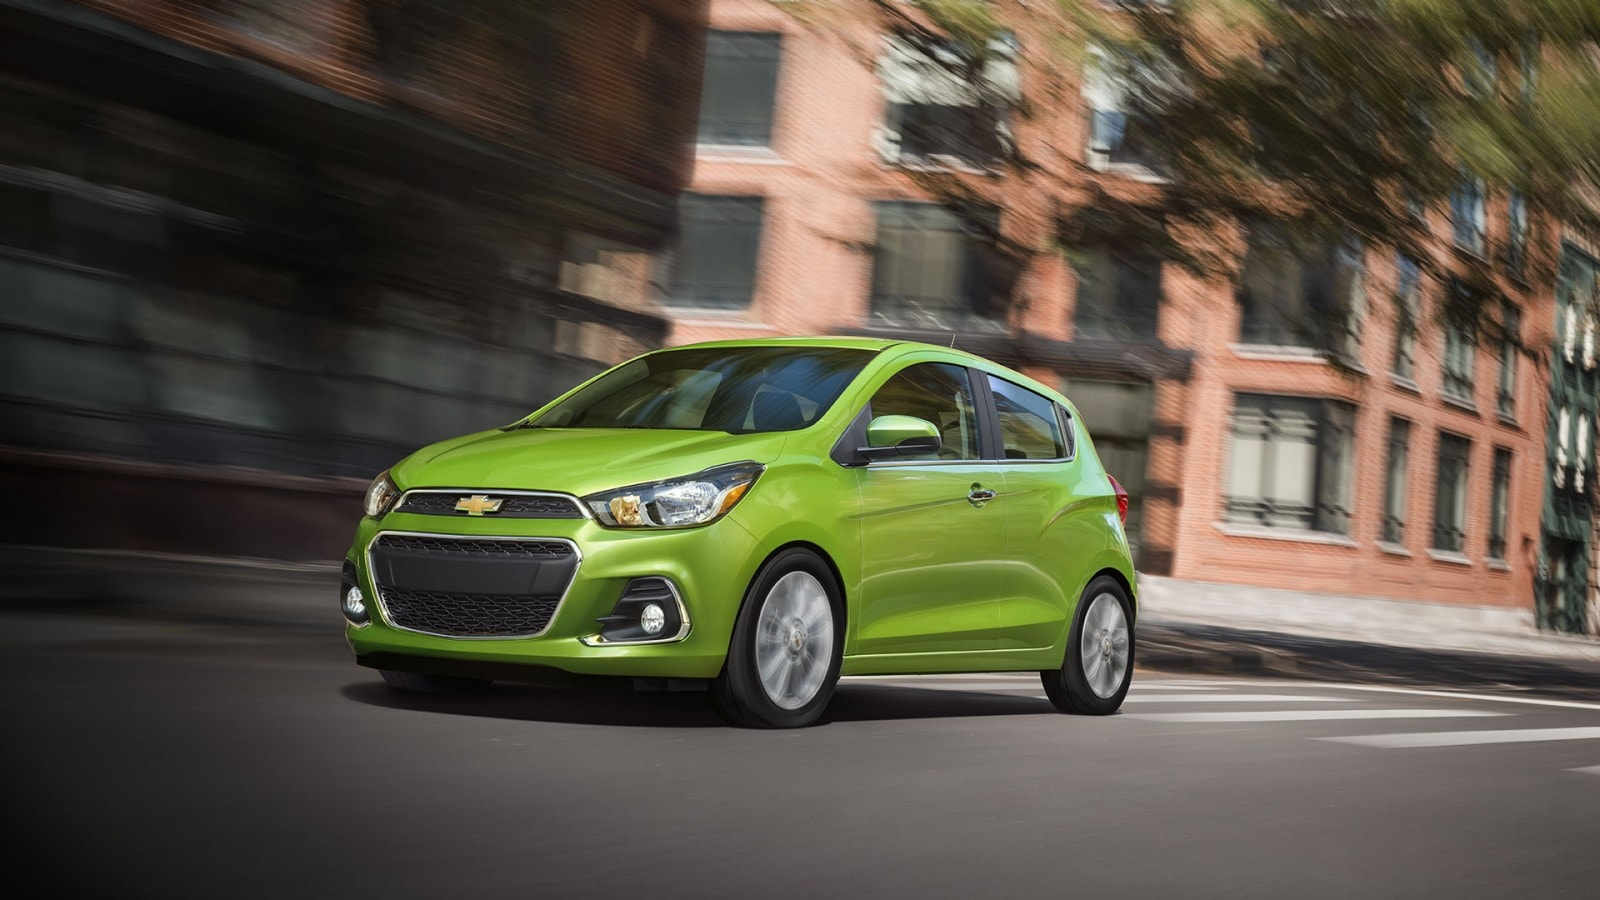 2016 Chevy Spark for sale in Cincinnati